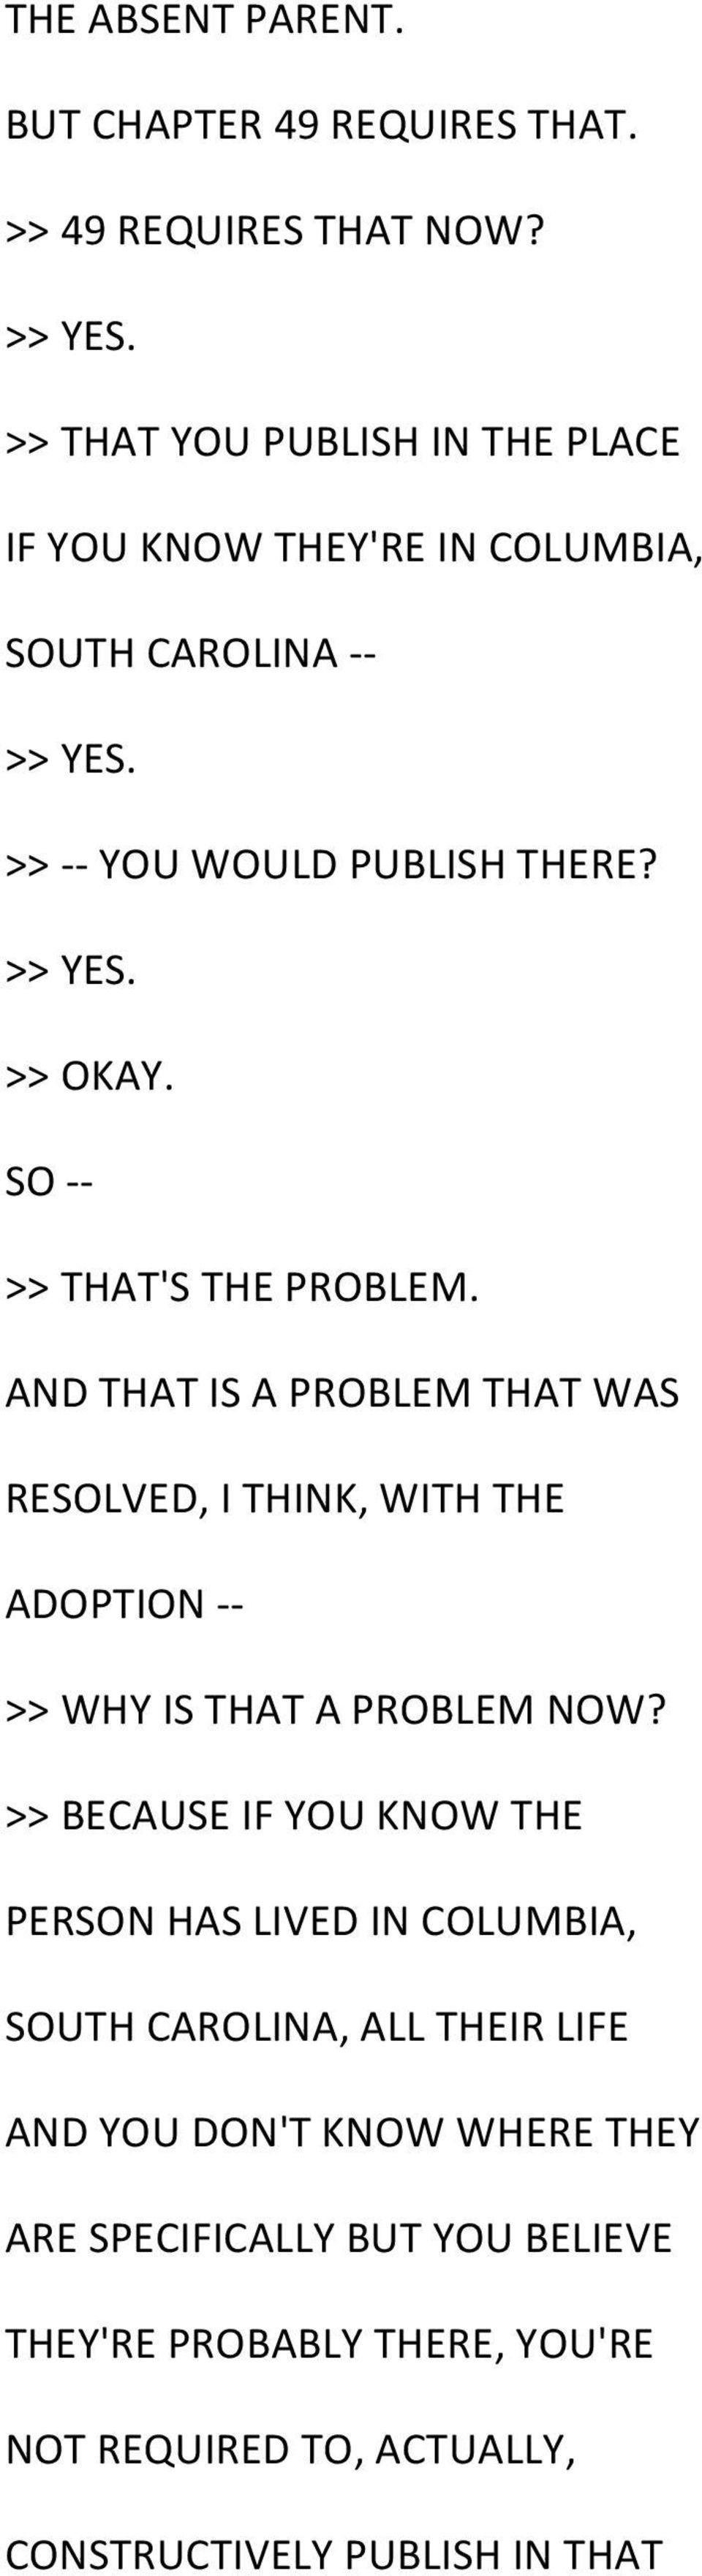 SO - - >> THAT'S THE PROBLEM. AND THAT IS A PROBLEM THAT WAS RESOLVED, I THINK, WITH THE ADOPTION - - >> WHY IS THAT A PROBLEM NOW?